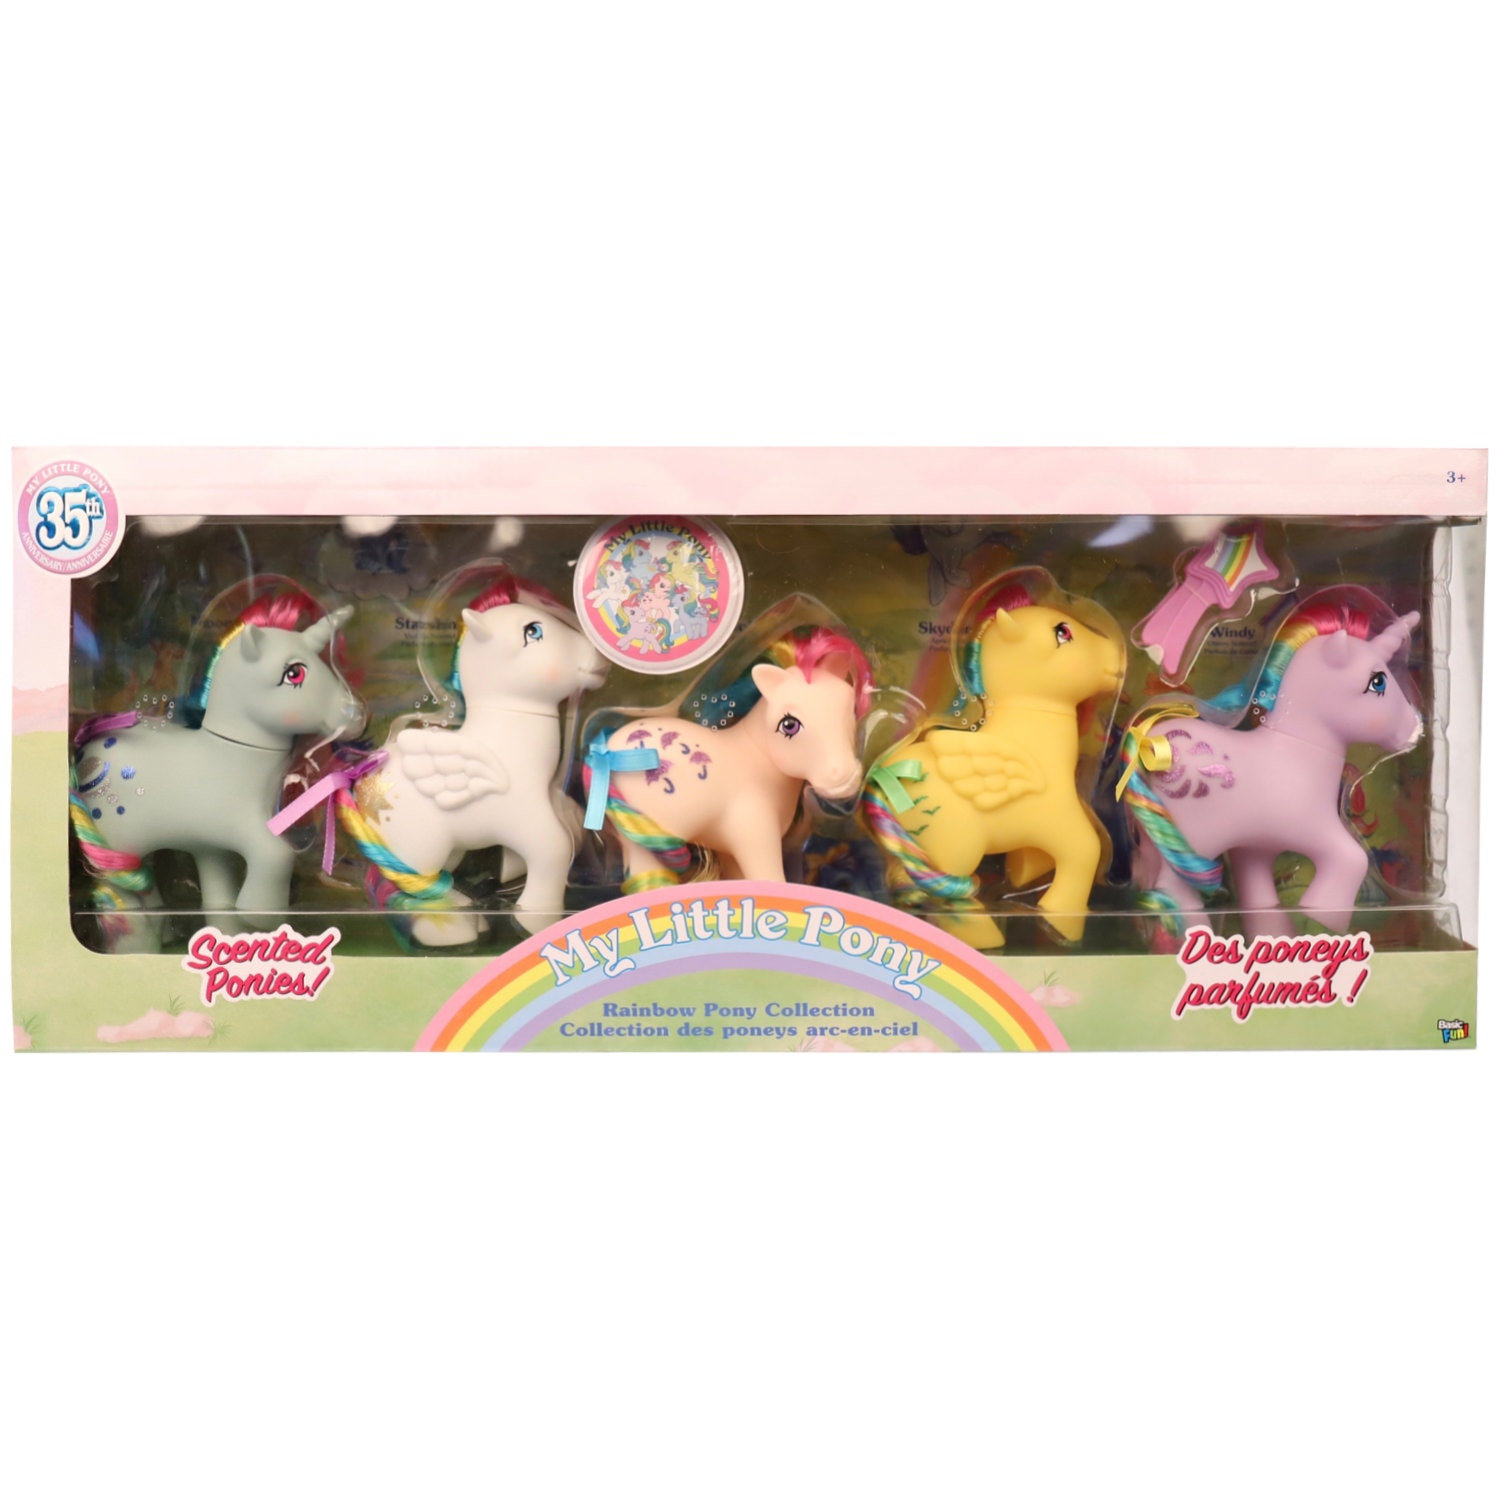 My Little Pony Retro Figures From Basic Fun Will Fire Up Your 80s